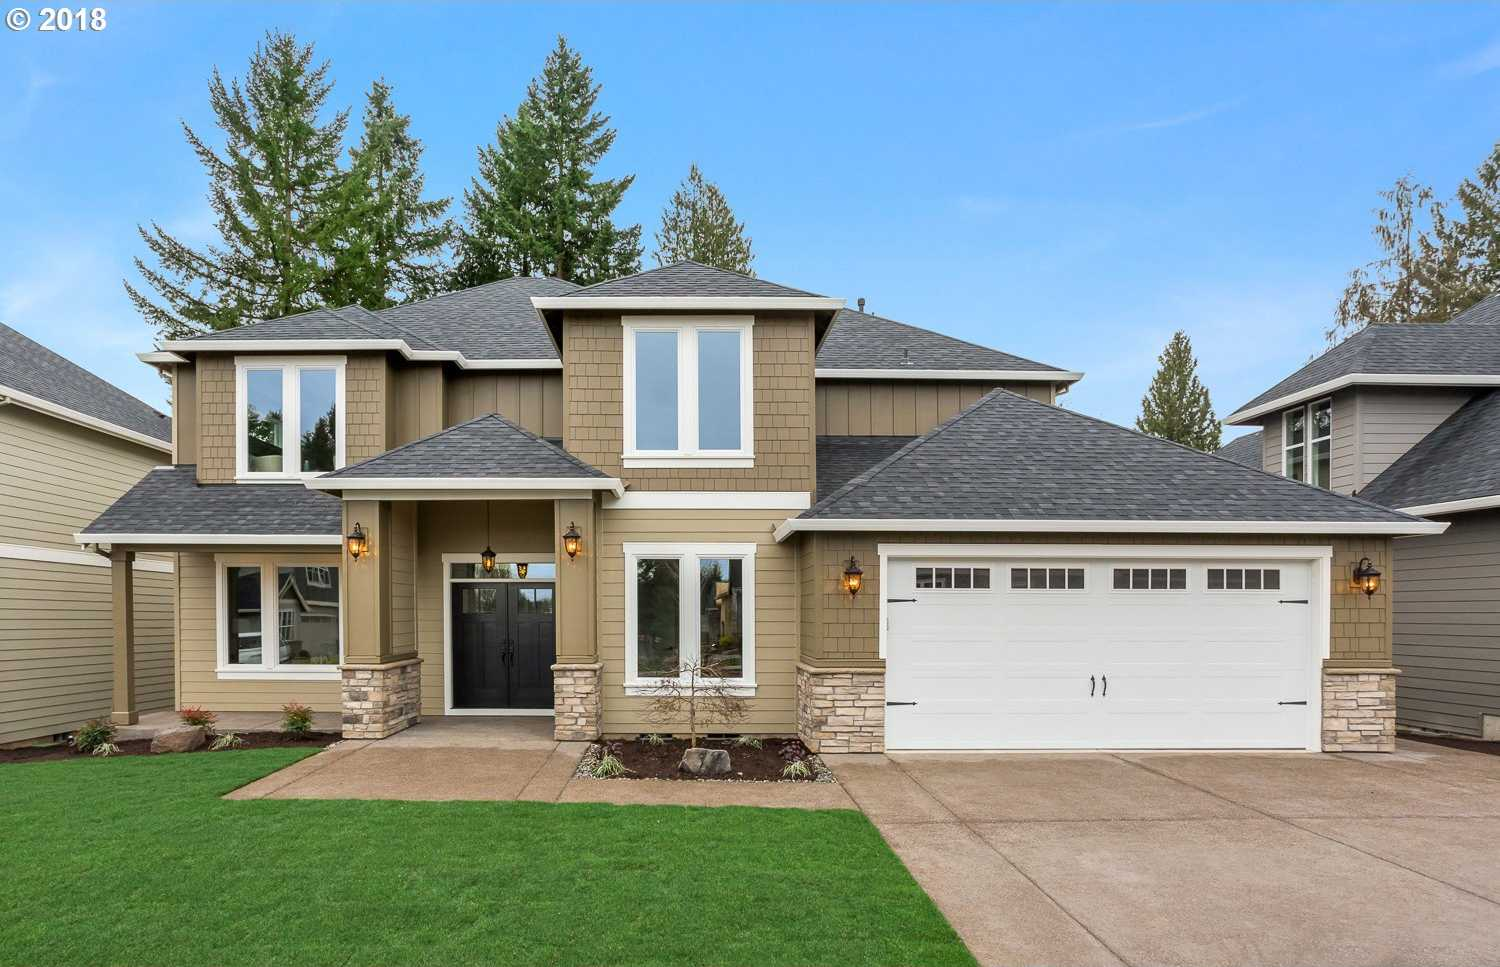 $839,000 - 4Br/3Ba -  for Sale in Tigard